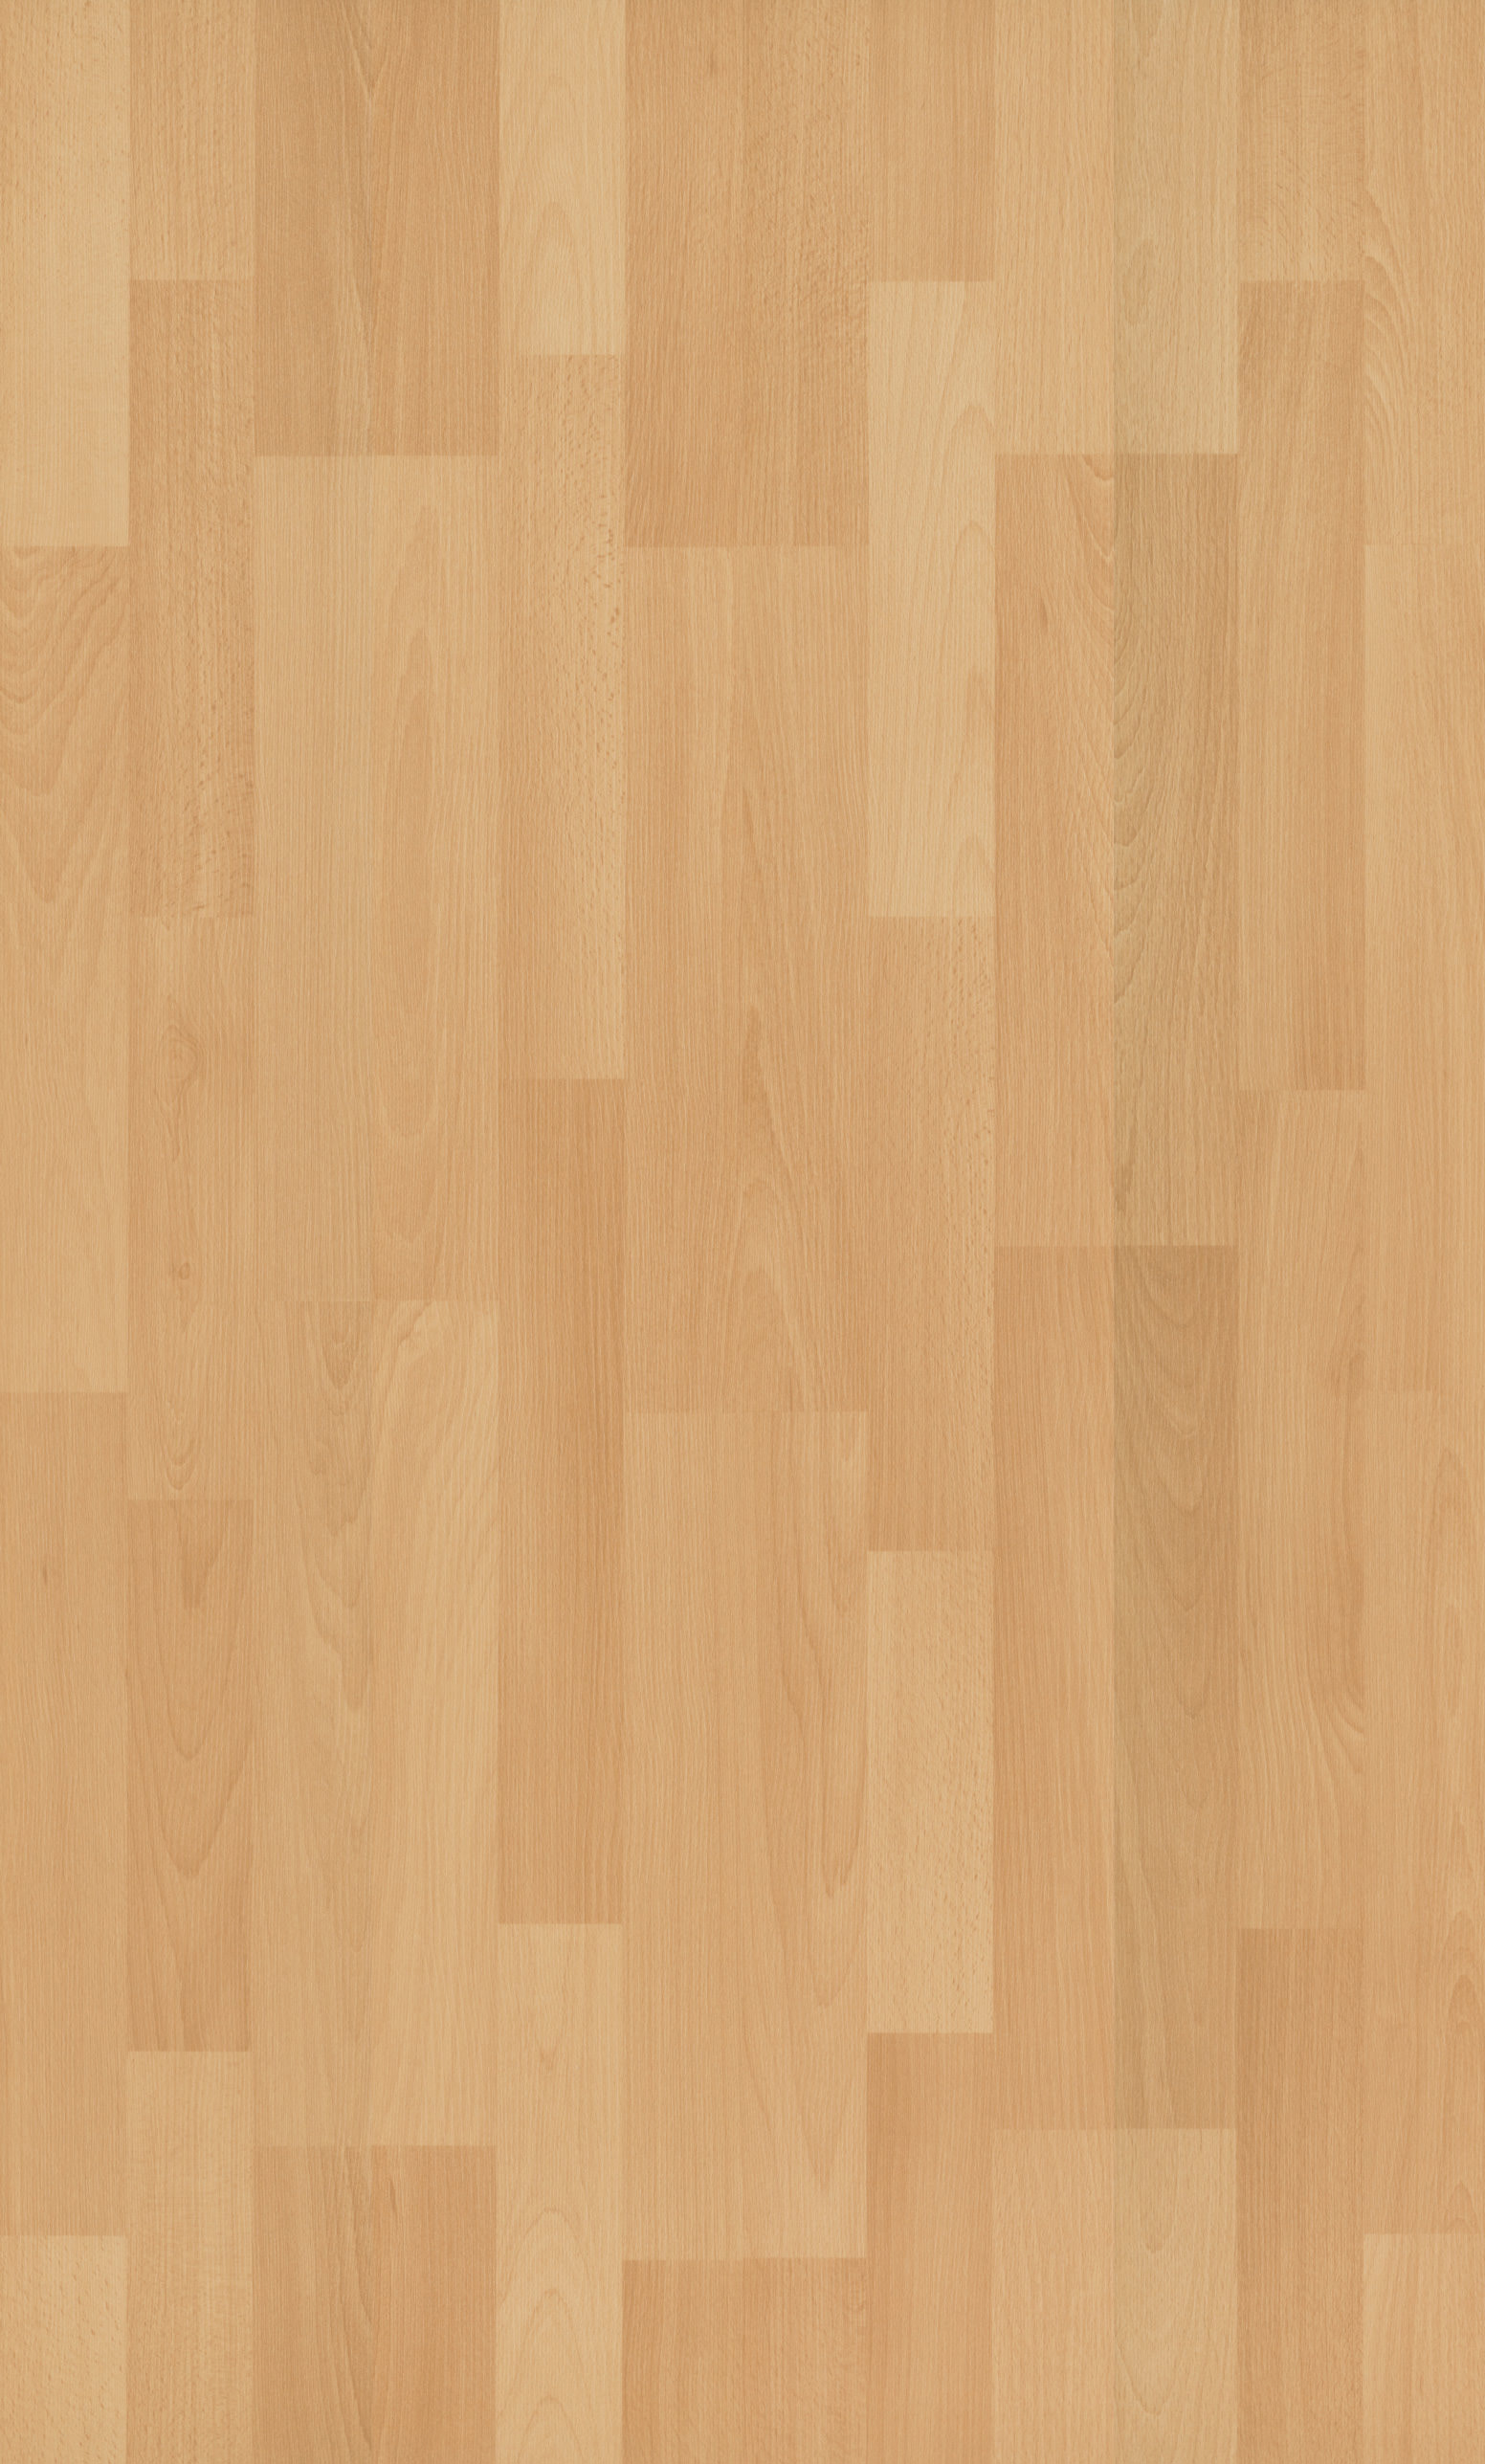 Tarkett Occasions Laminate Flooring Laplounge